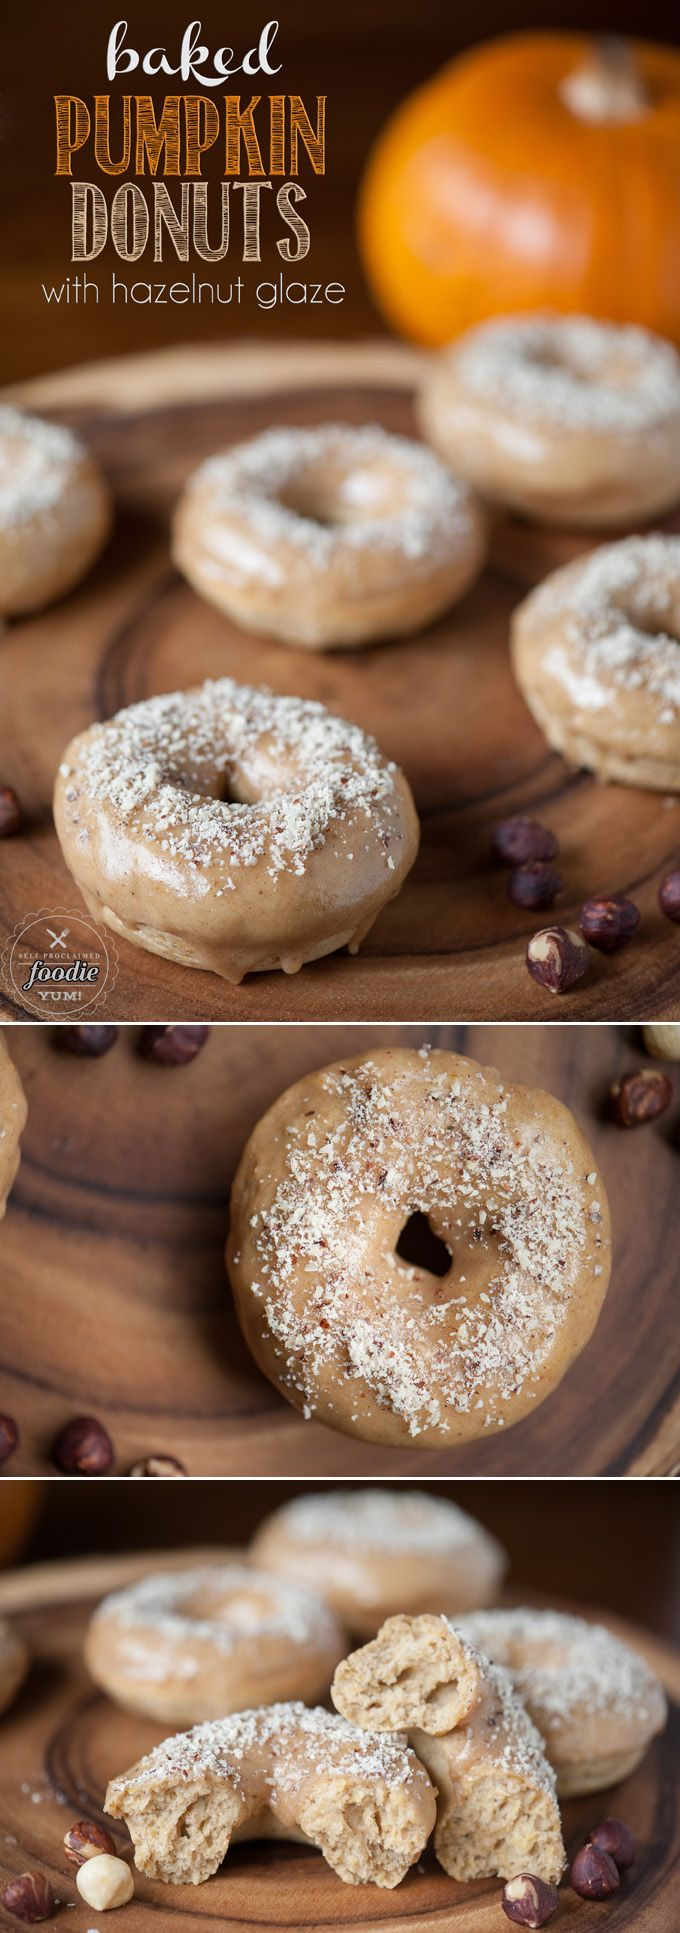 These Baked Pumpkin Donuts with hazelnut glaze are simple to make and are the perfect comfort food Fall treat.